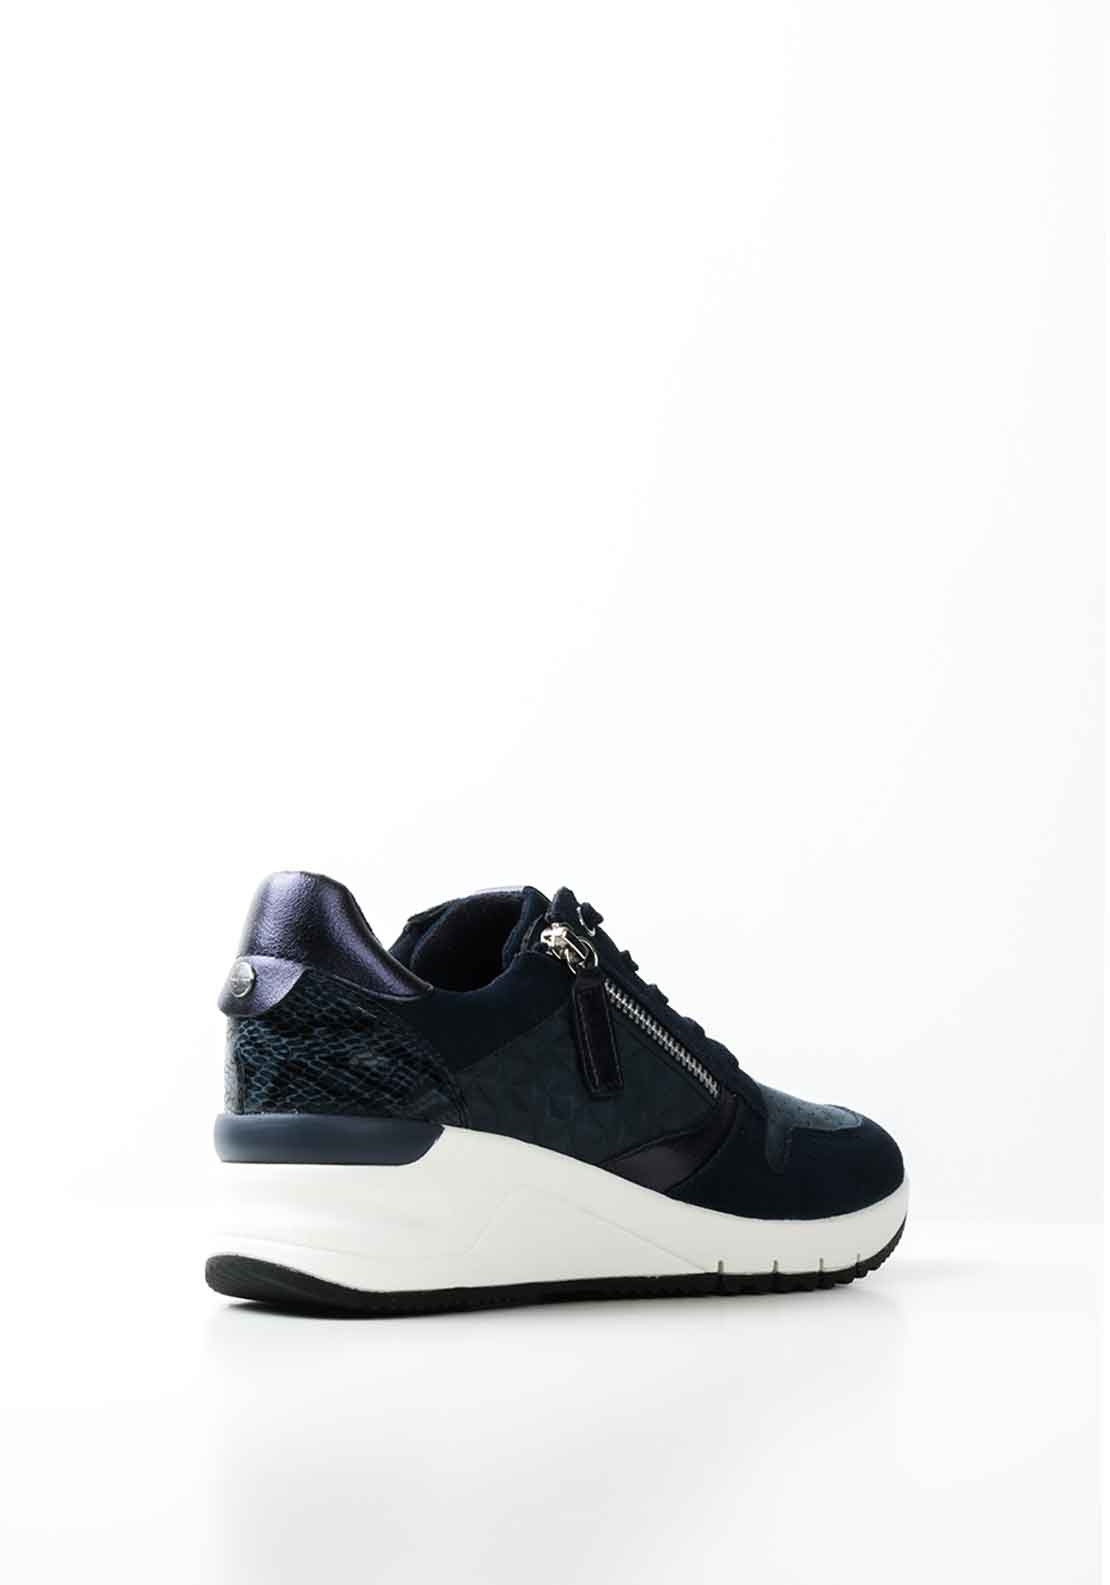 Tamaris Suede Lace Up Wedged Trainers